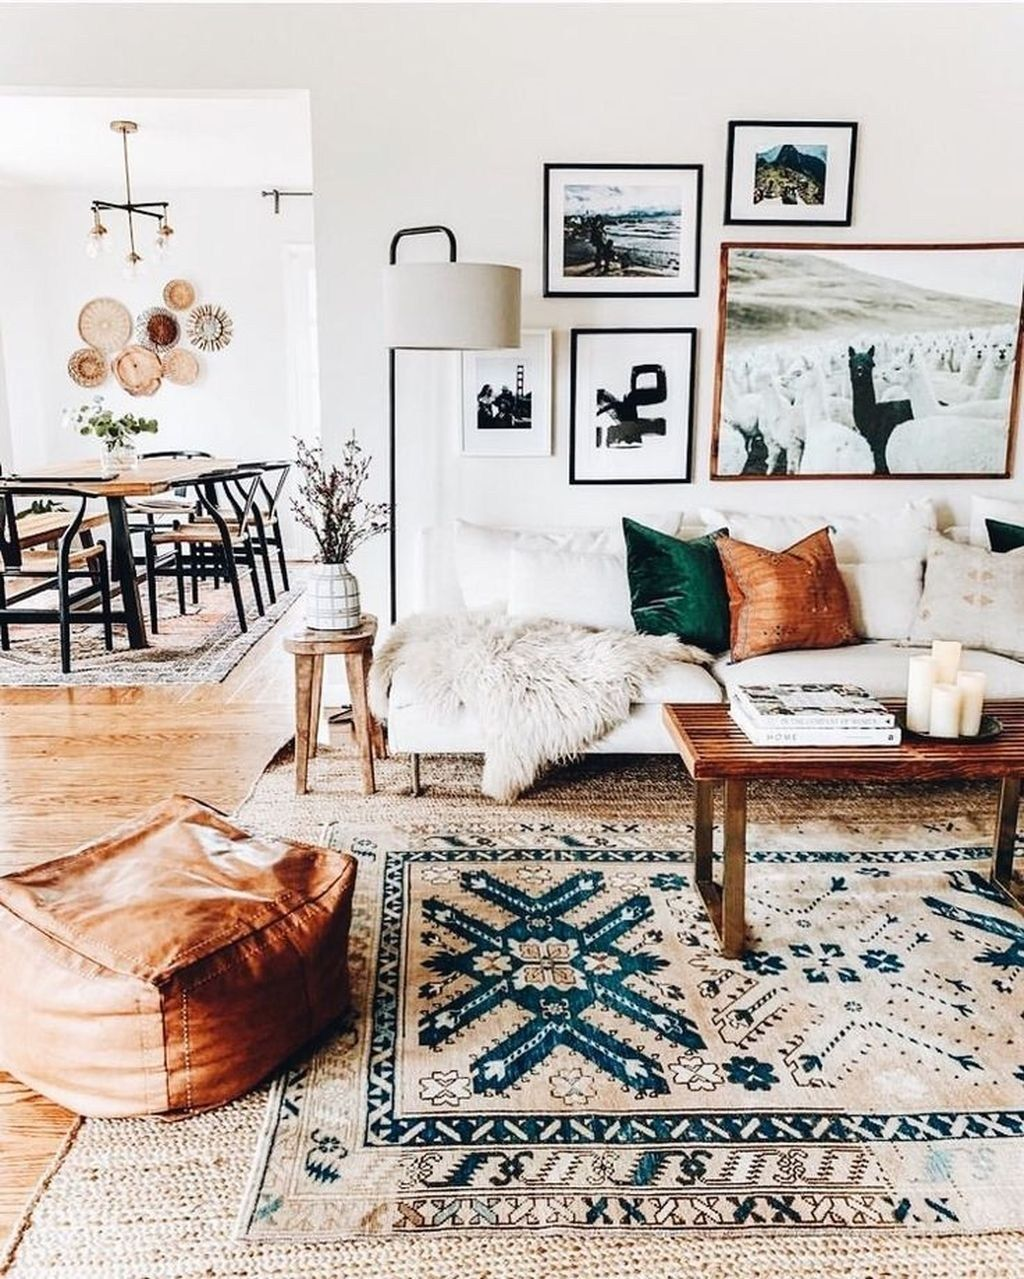 Pin On Eclectic Home